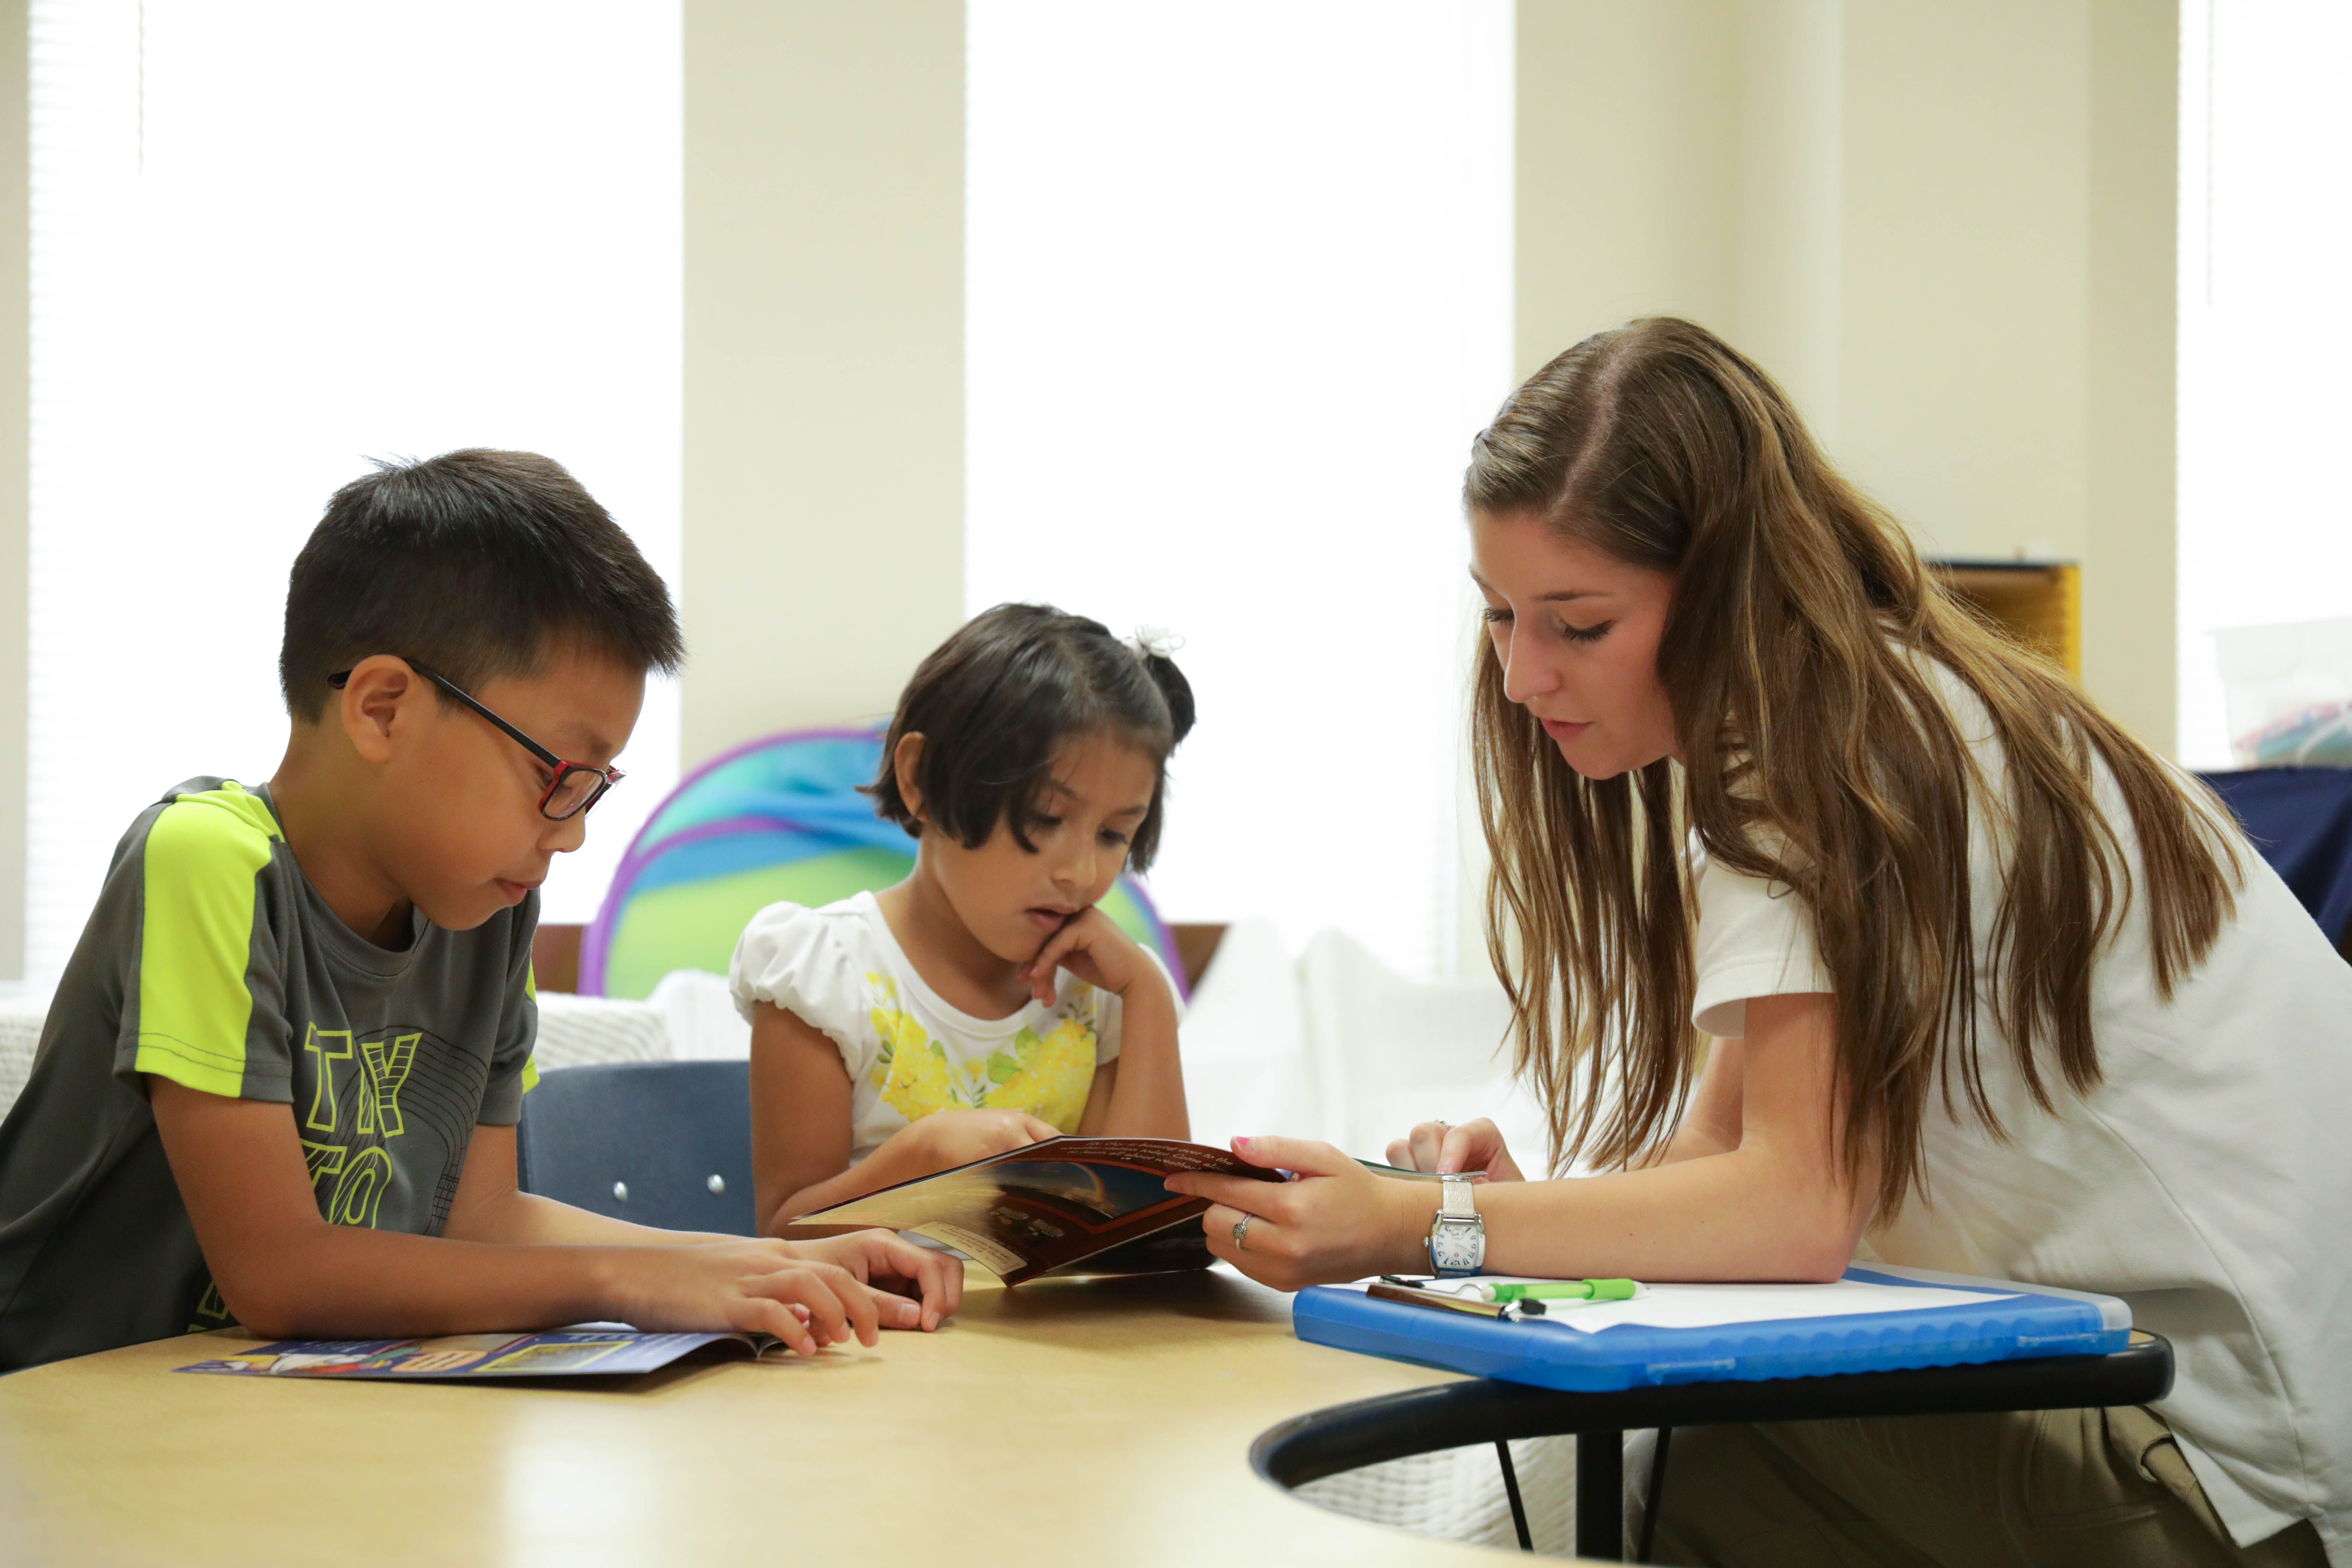 Speech-Language graduate student helping children with literacy skills